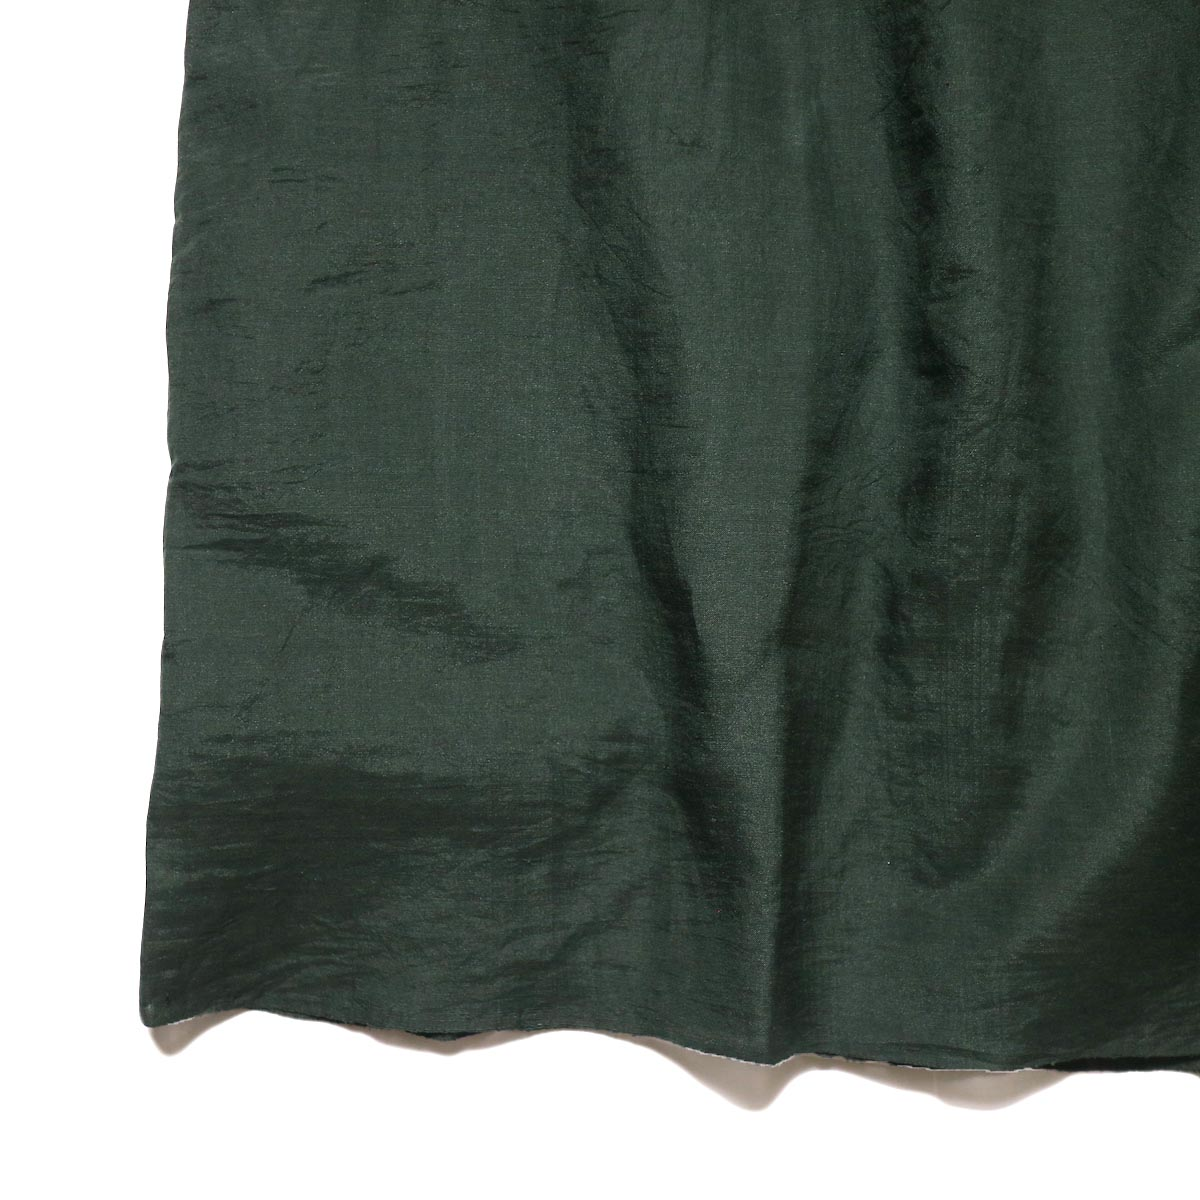 maison de soil / HAND WOVEN COTTON SILK × SILK PLAIN DROP SHOULDER DRESS (green) 裾